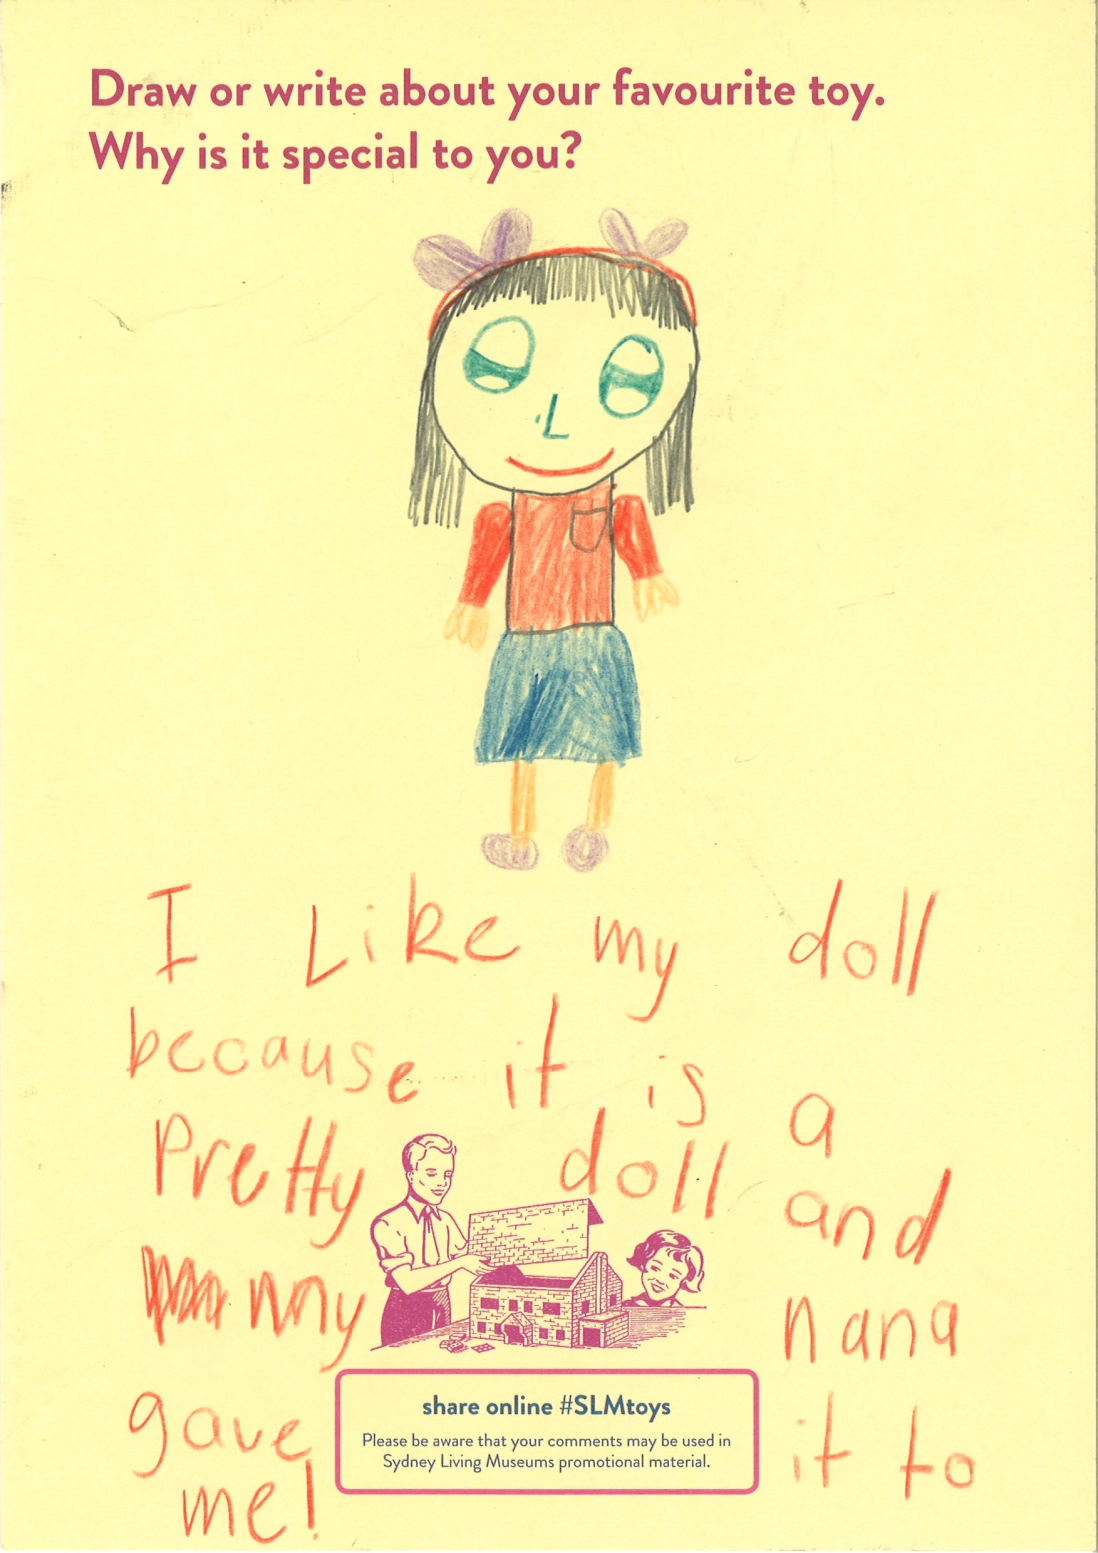 This is a child's colour drawing of a female doll with writing below